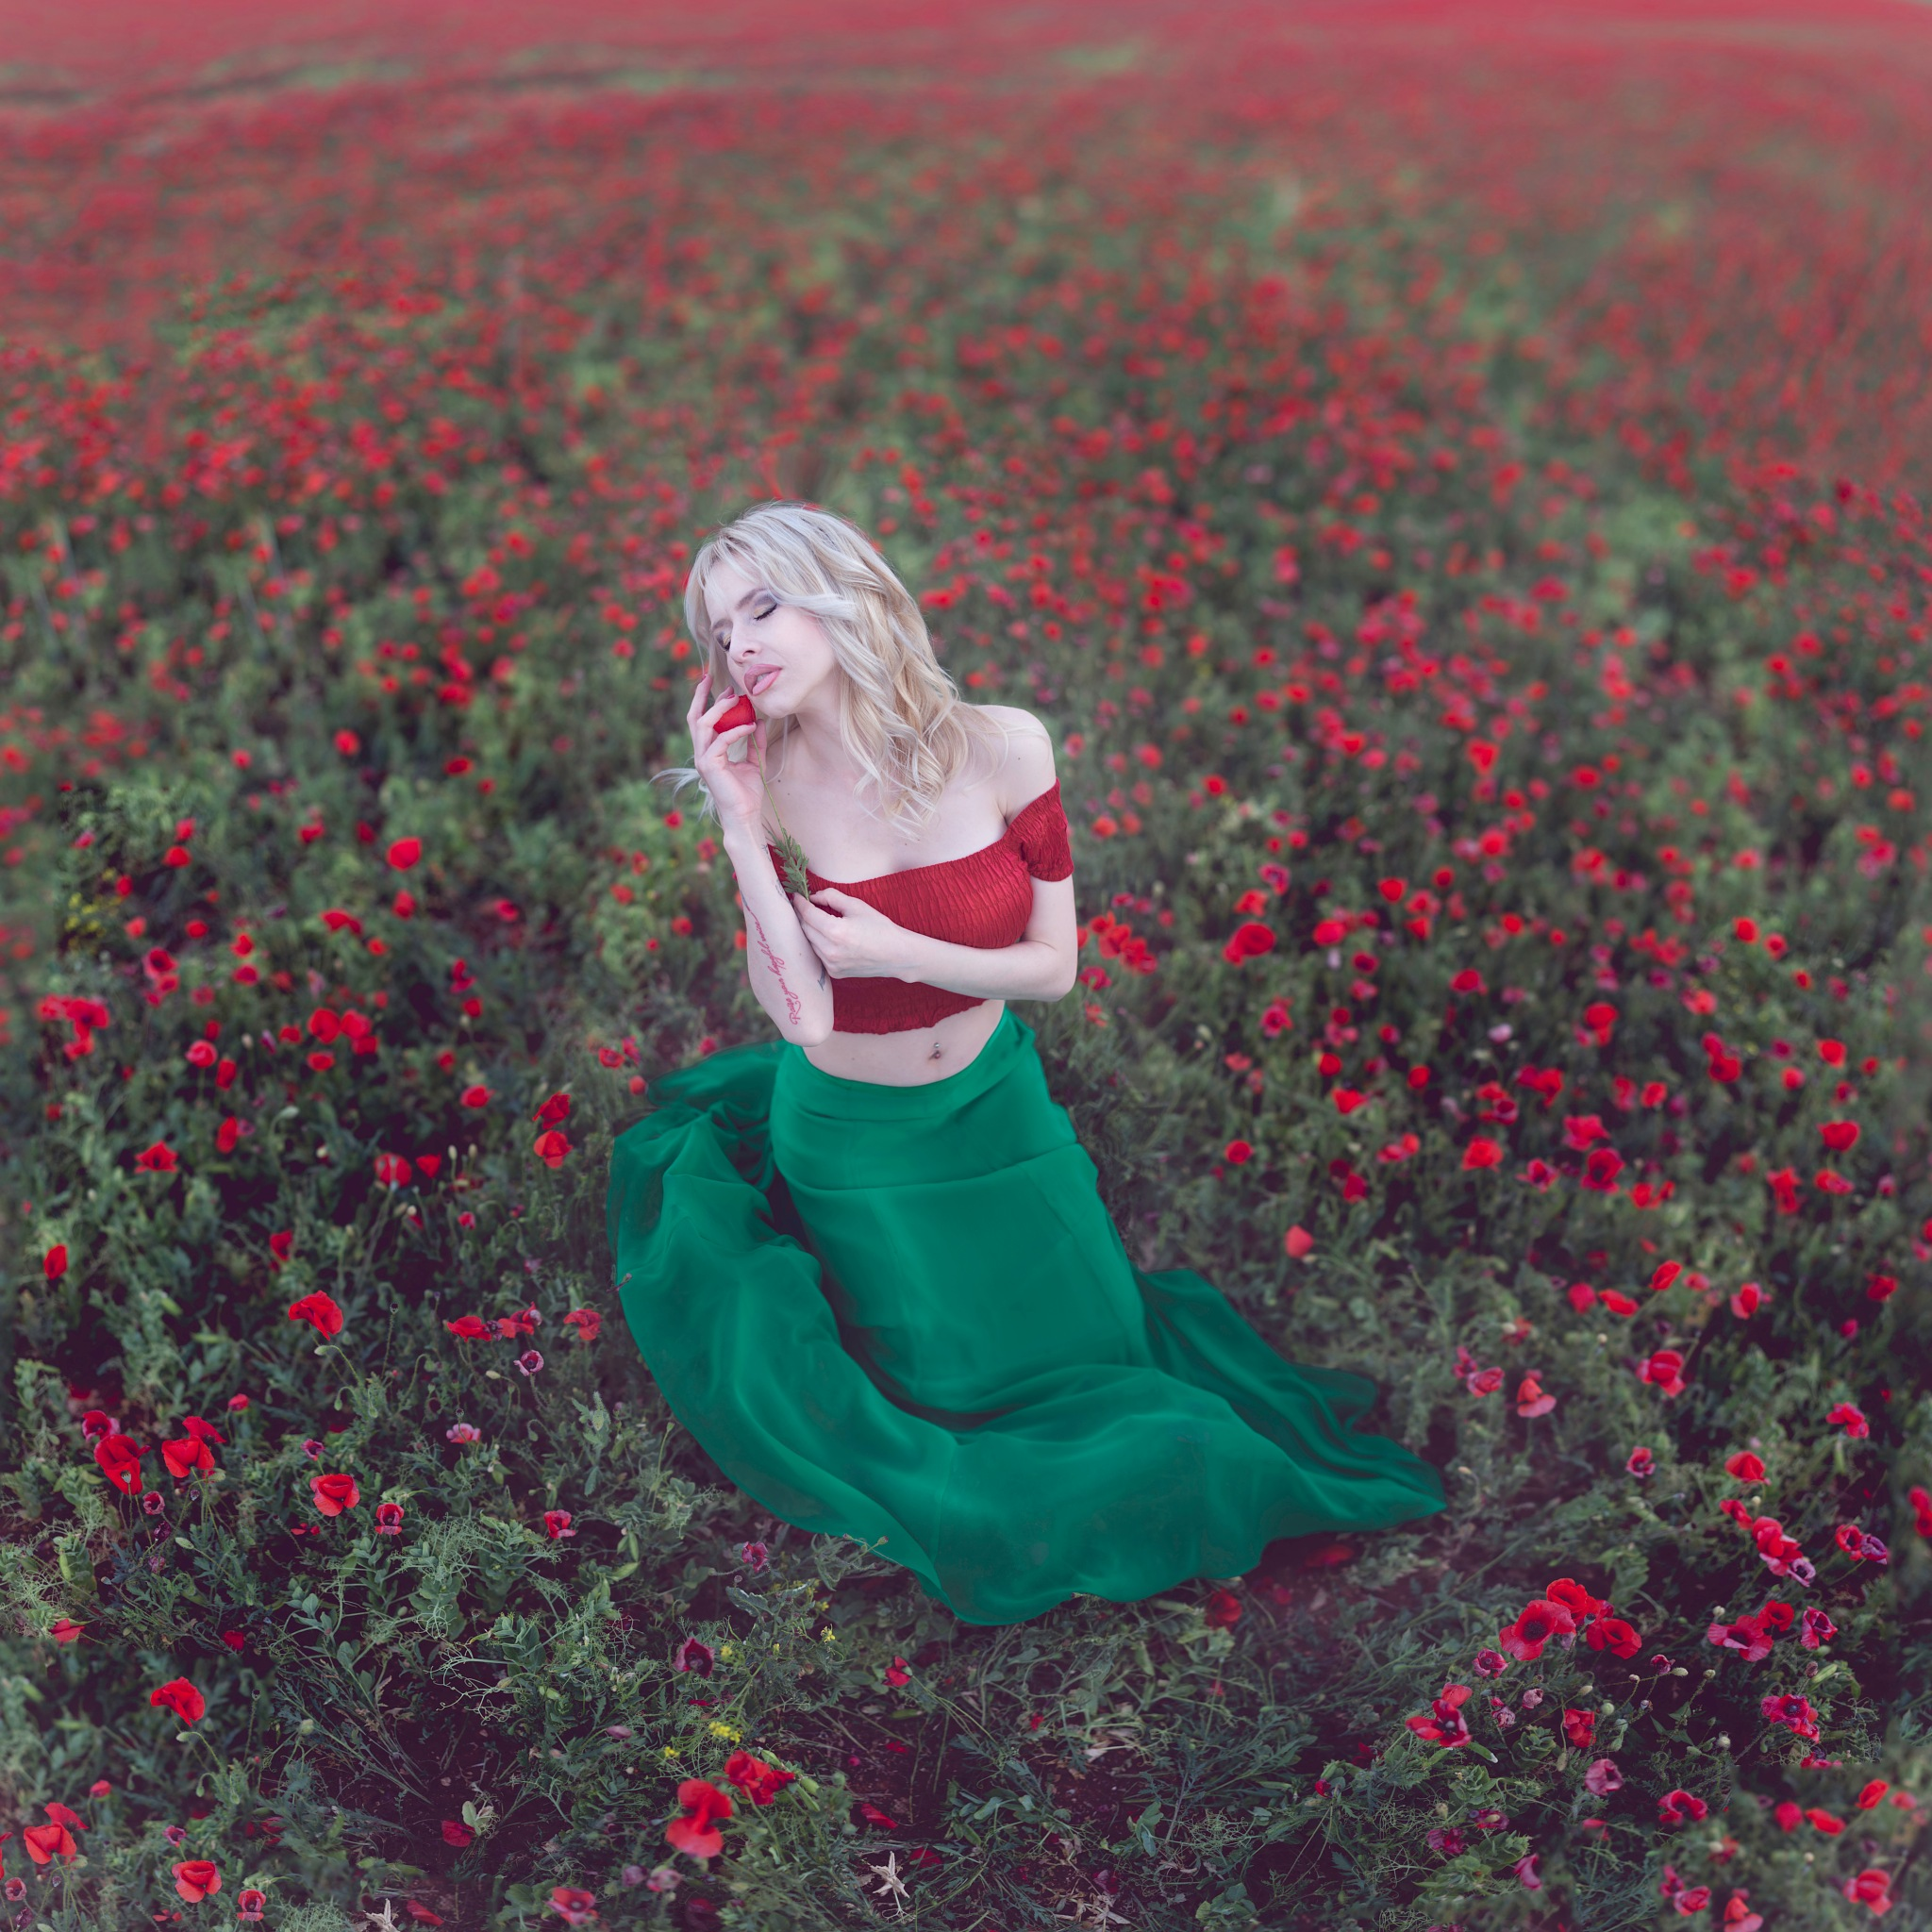 The little poppy by  Jesus Solana  Poegraphy